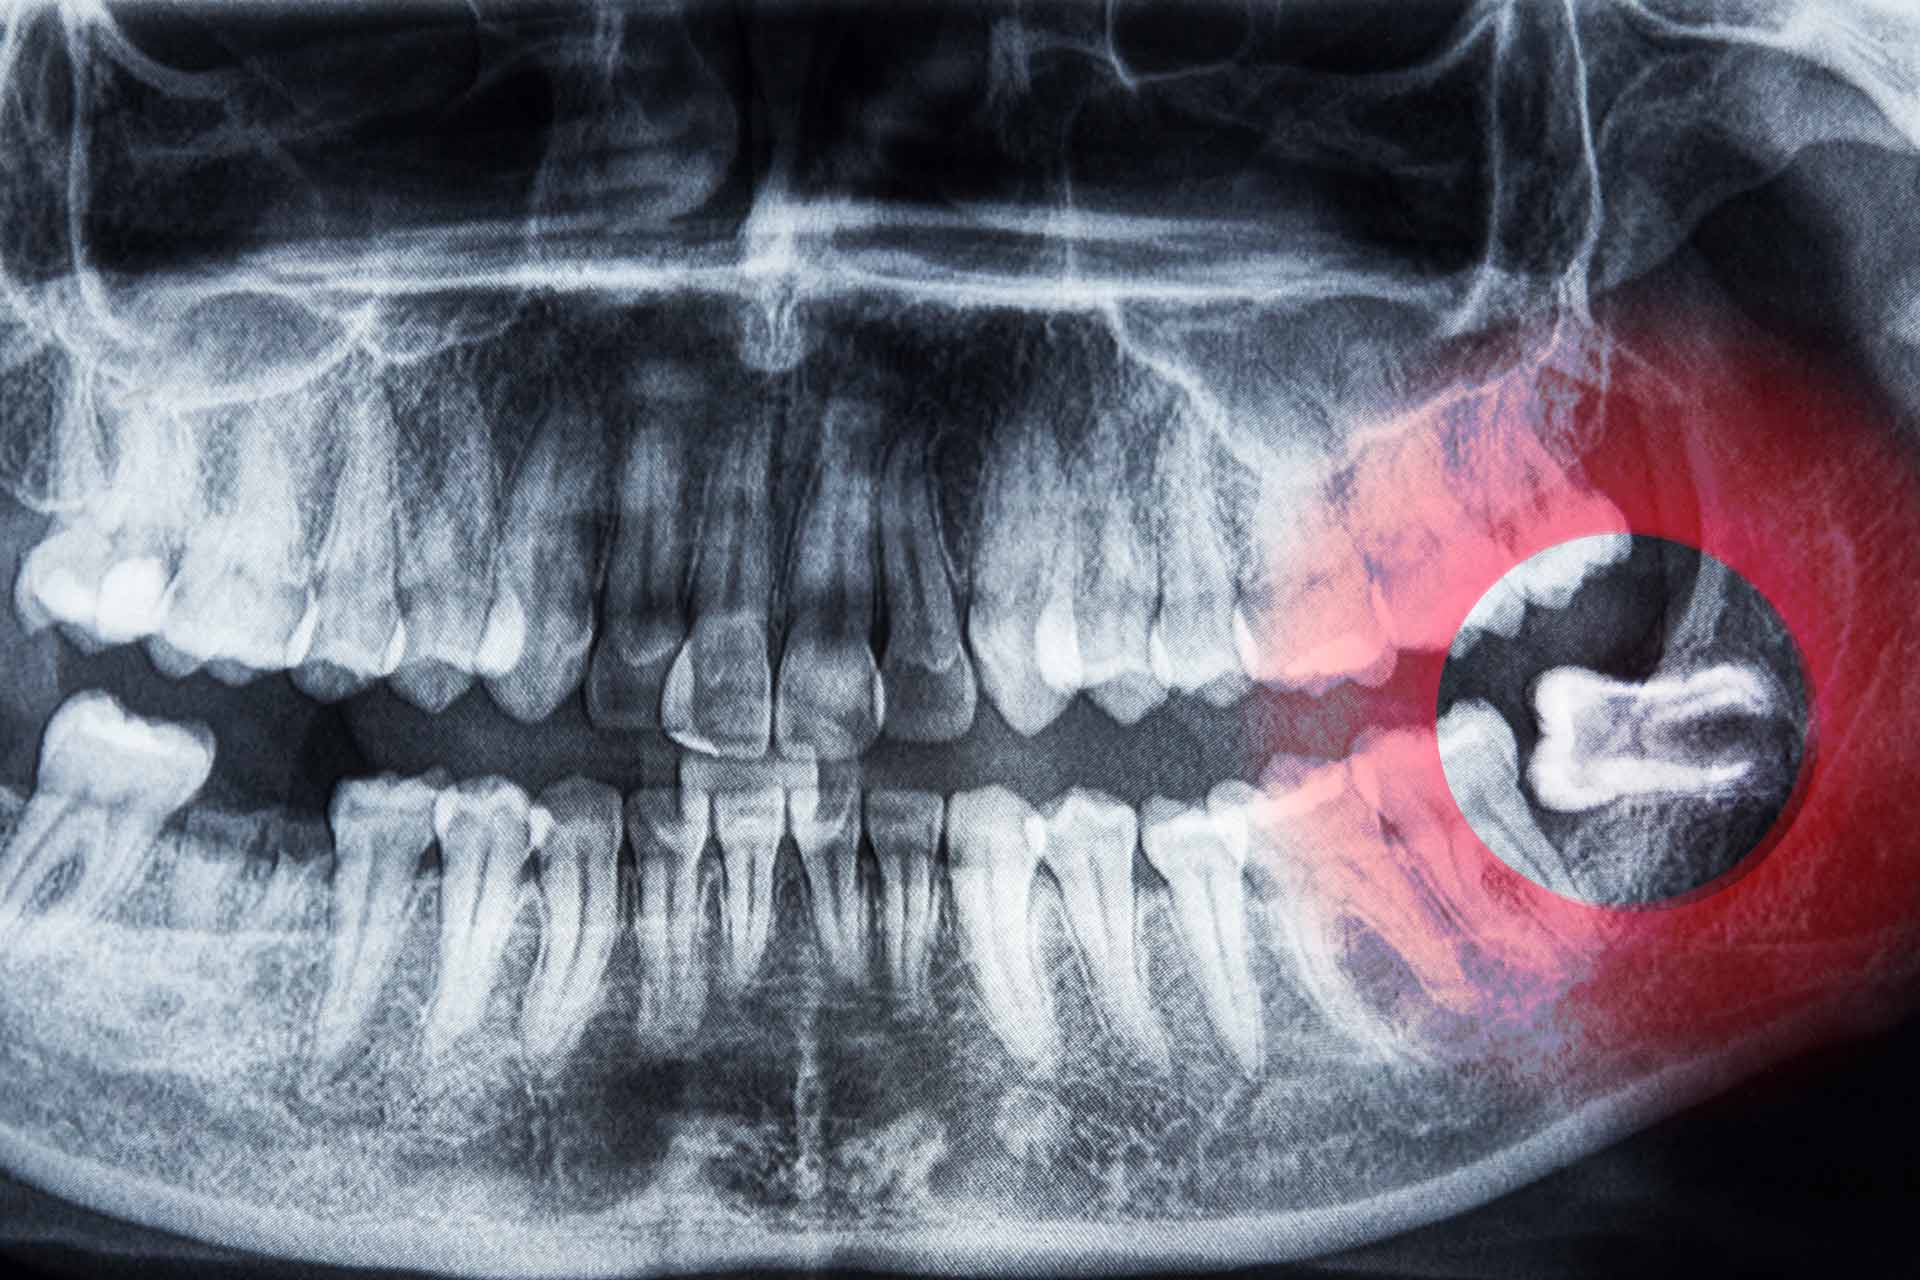 Wisdom teeth: why and when they need extracting